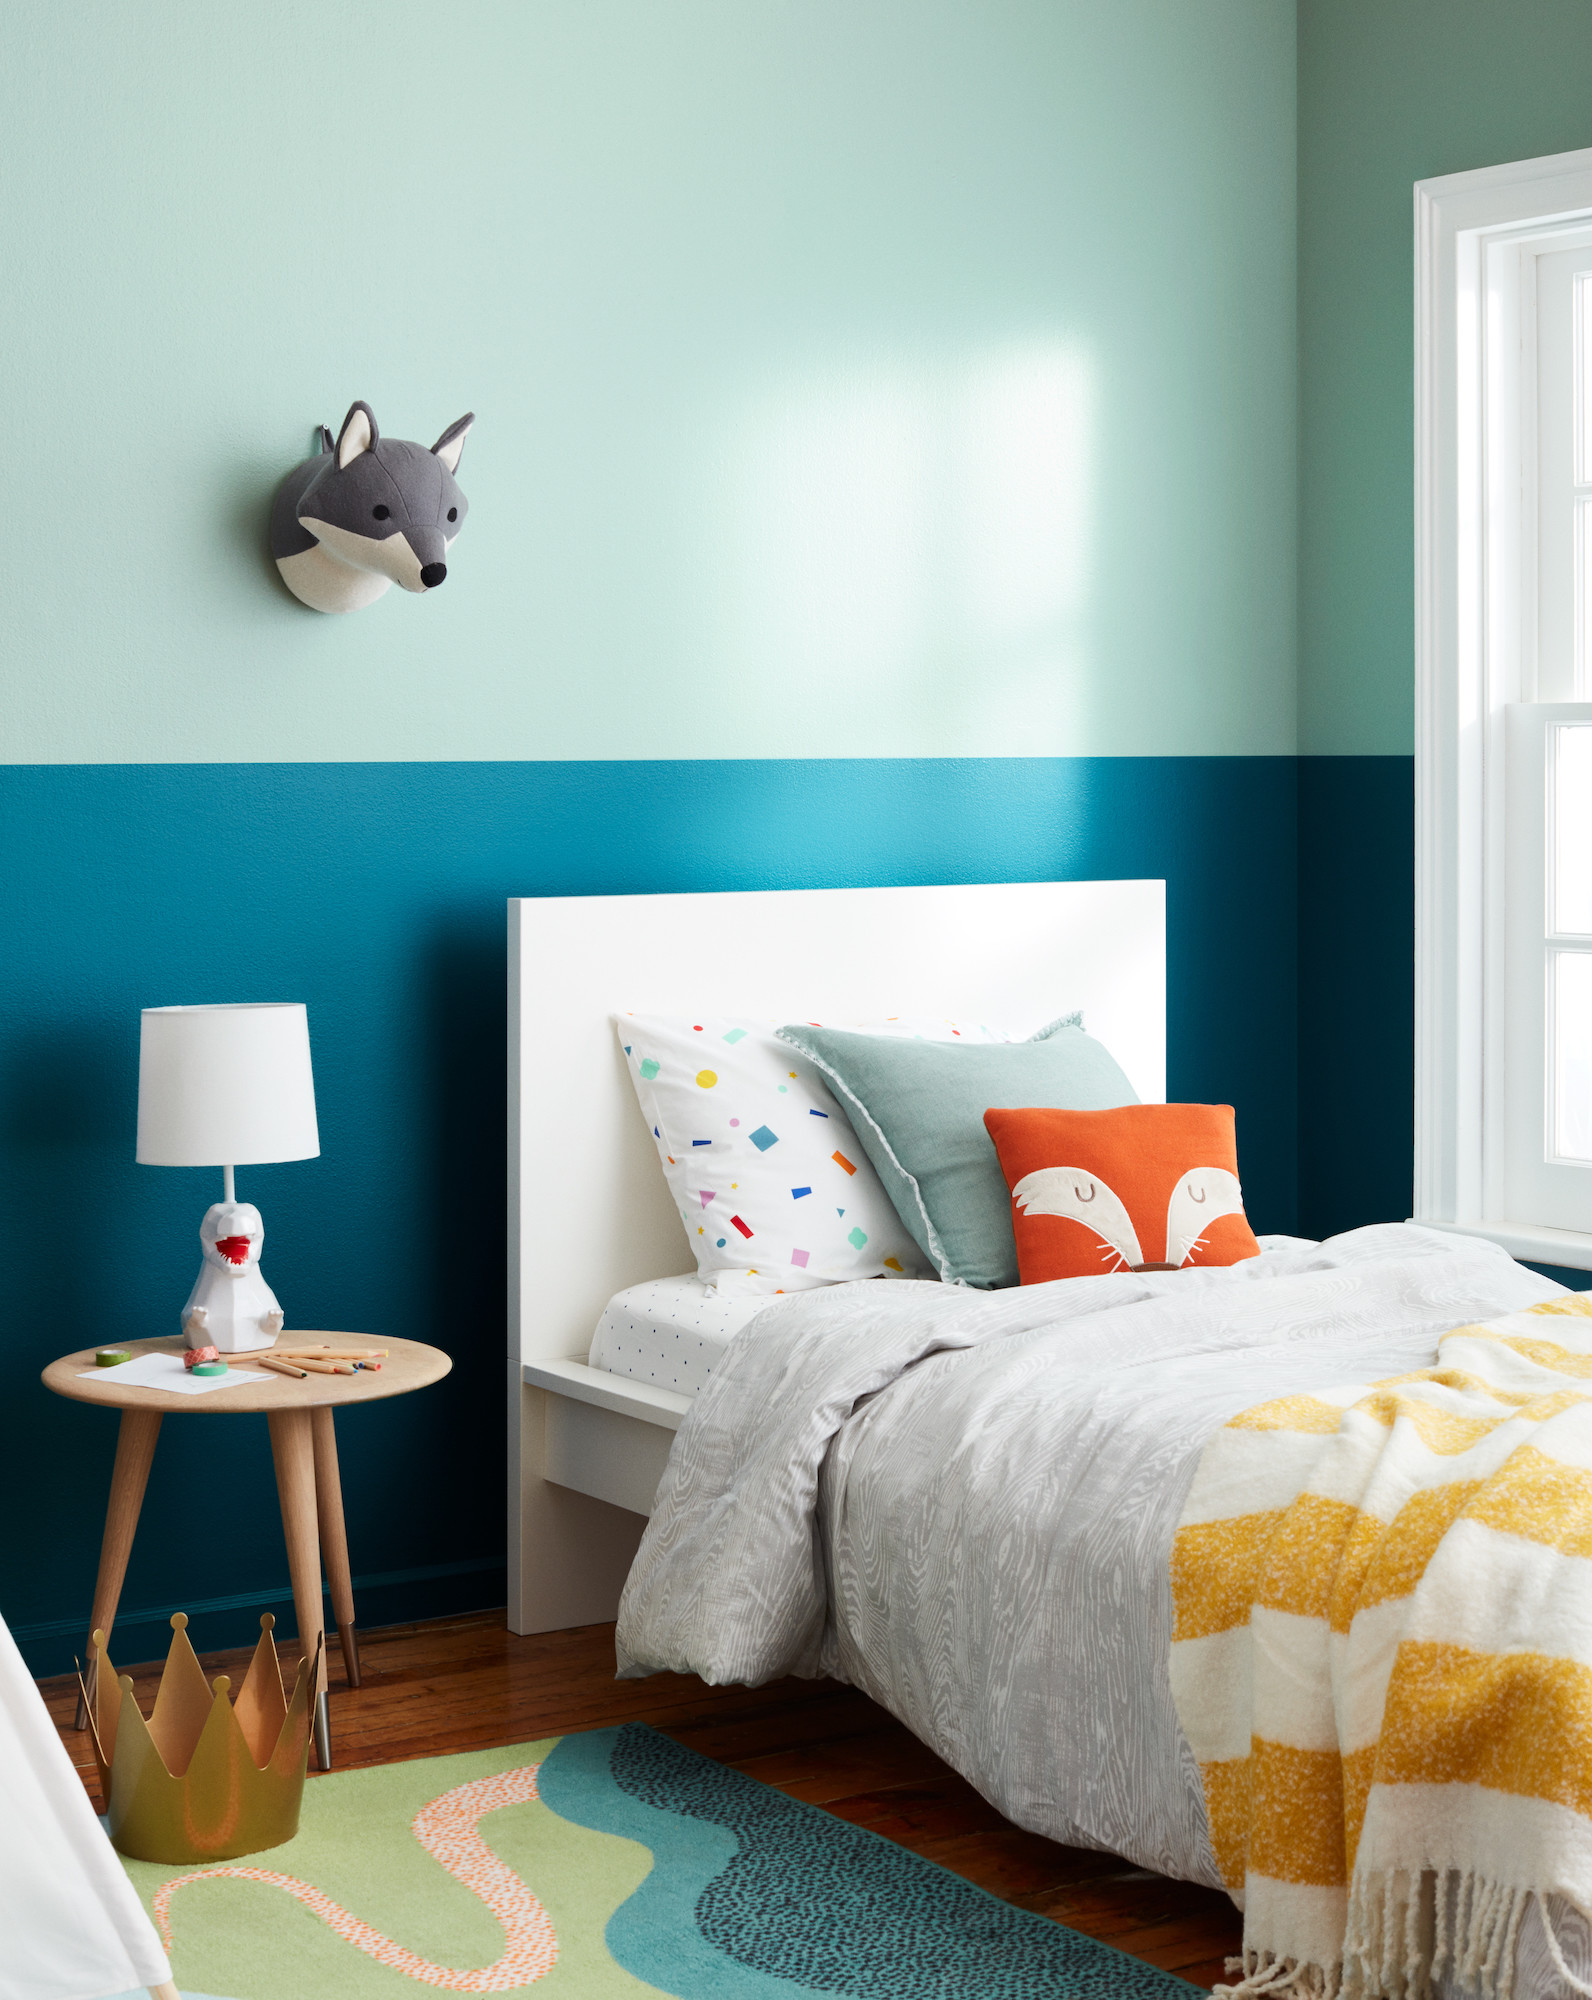 Clare Paint - Sublime - Wall Gallon